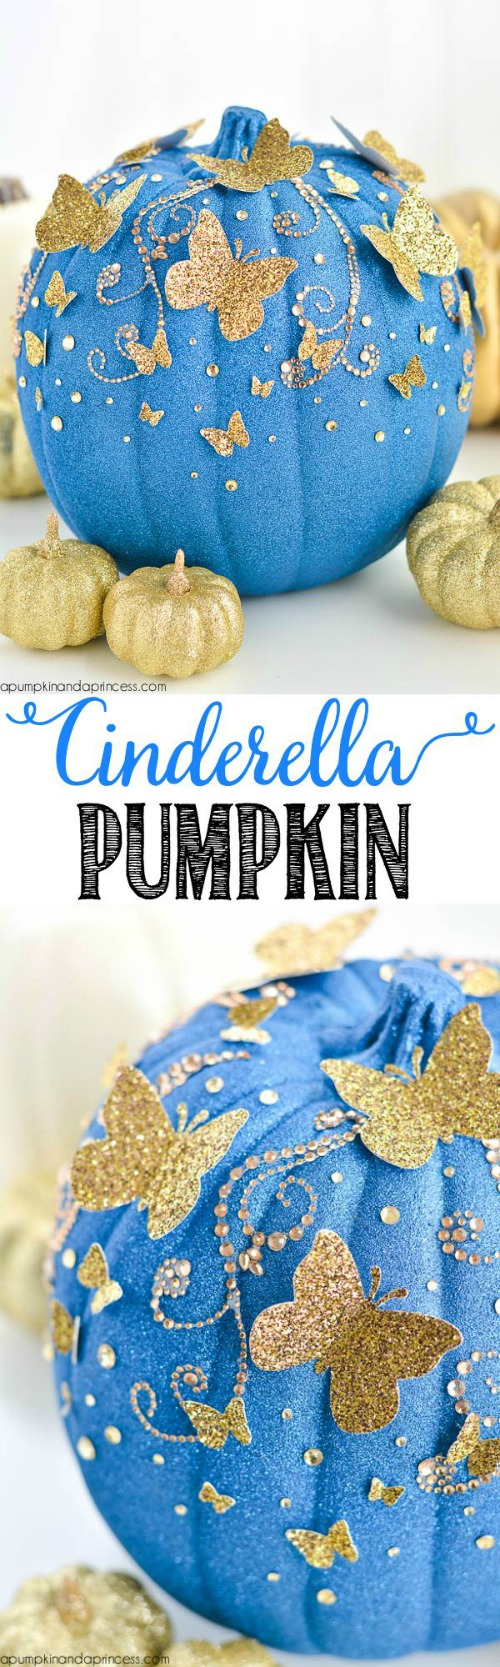 Find 22 Pumpkin Decorating ideas all in one place. Simple DIY craft tutorial ideas that are perfect for Halloween and Fall decor.